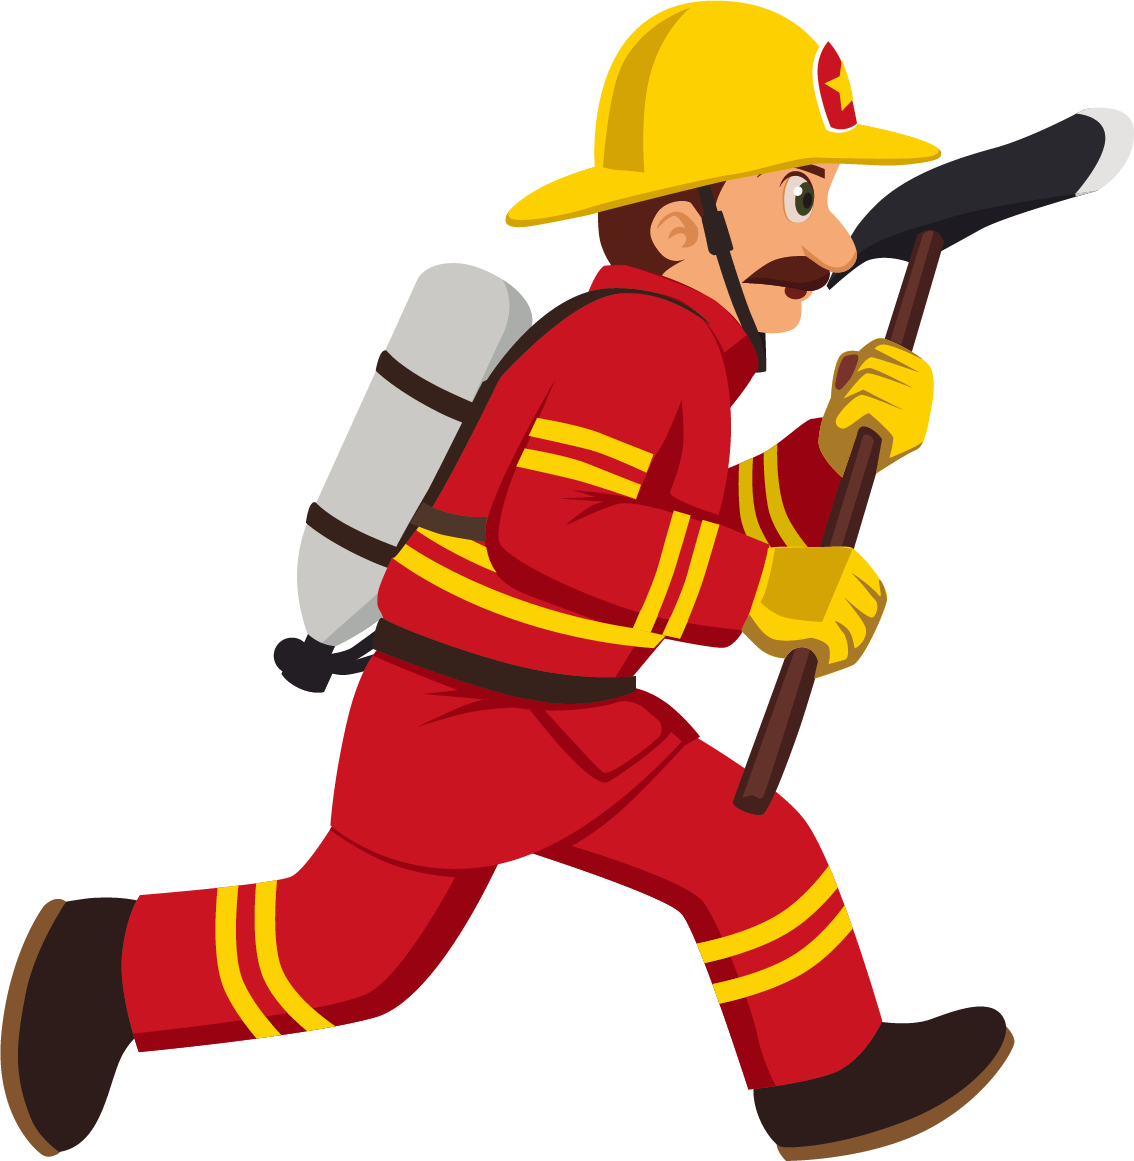 Fireman clipart worker indian. Firefighter cartoon royalty free